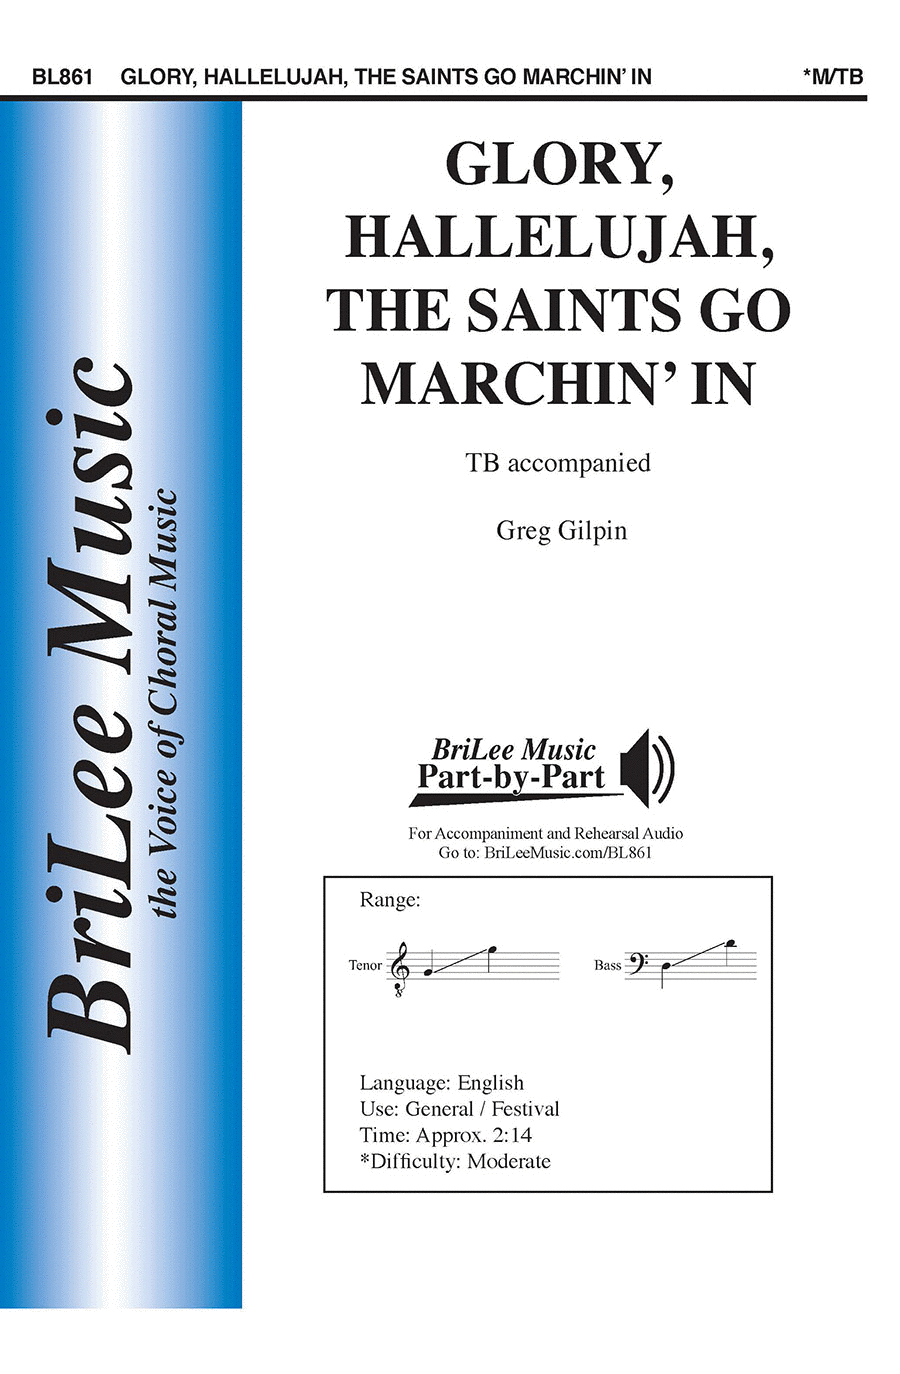 Glory, Hallelujah, the Saints Go Marchin' In